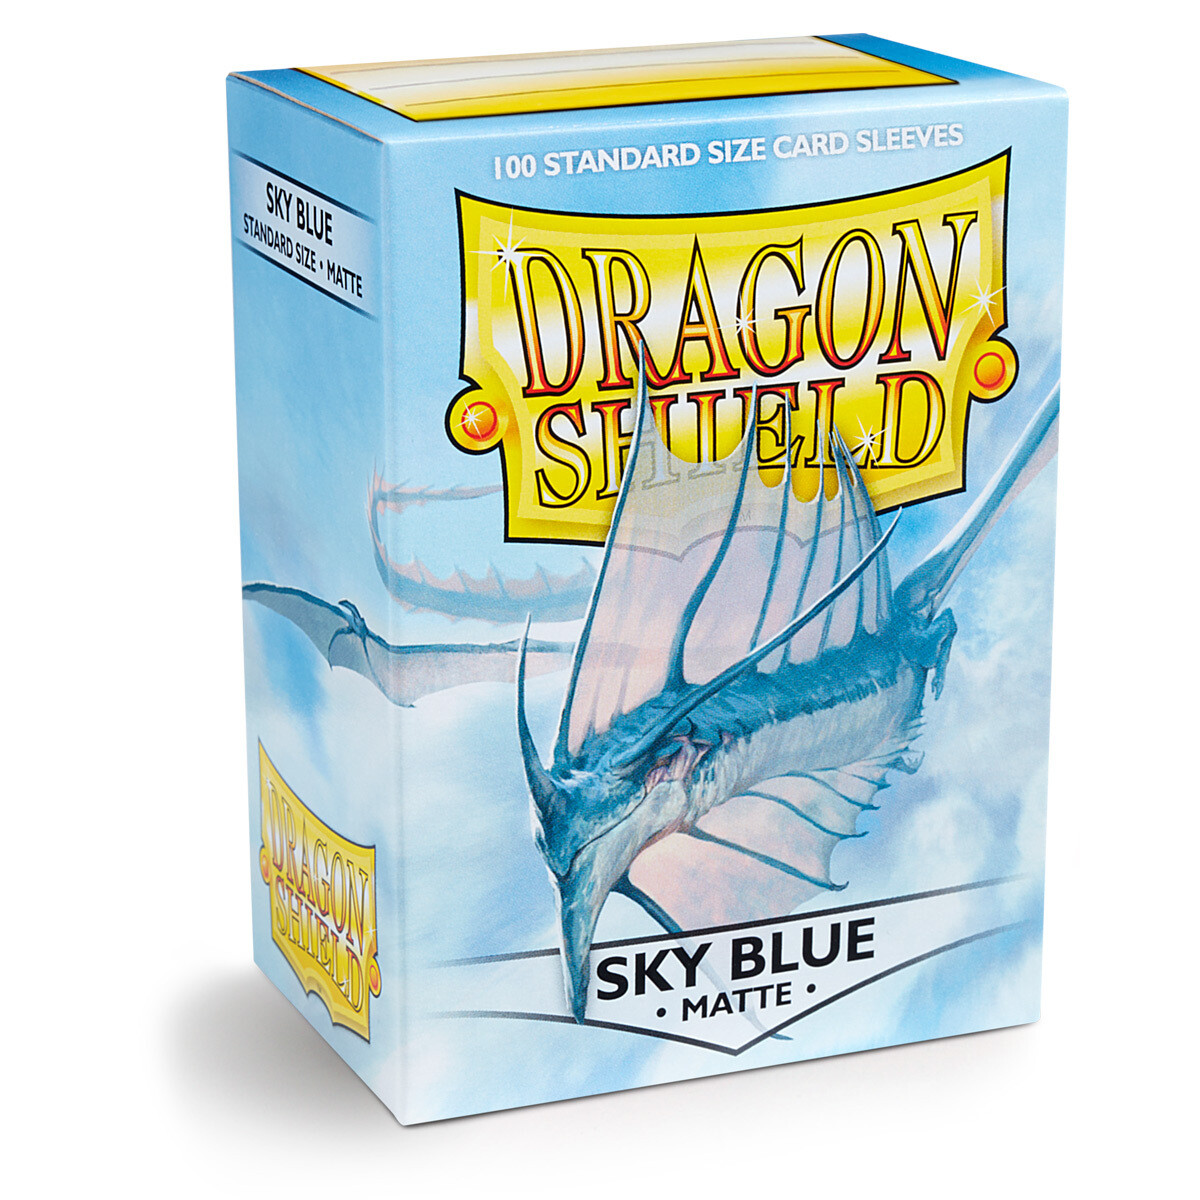 Dragon Shield 100 Sleeves - Matte Sky Blue